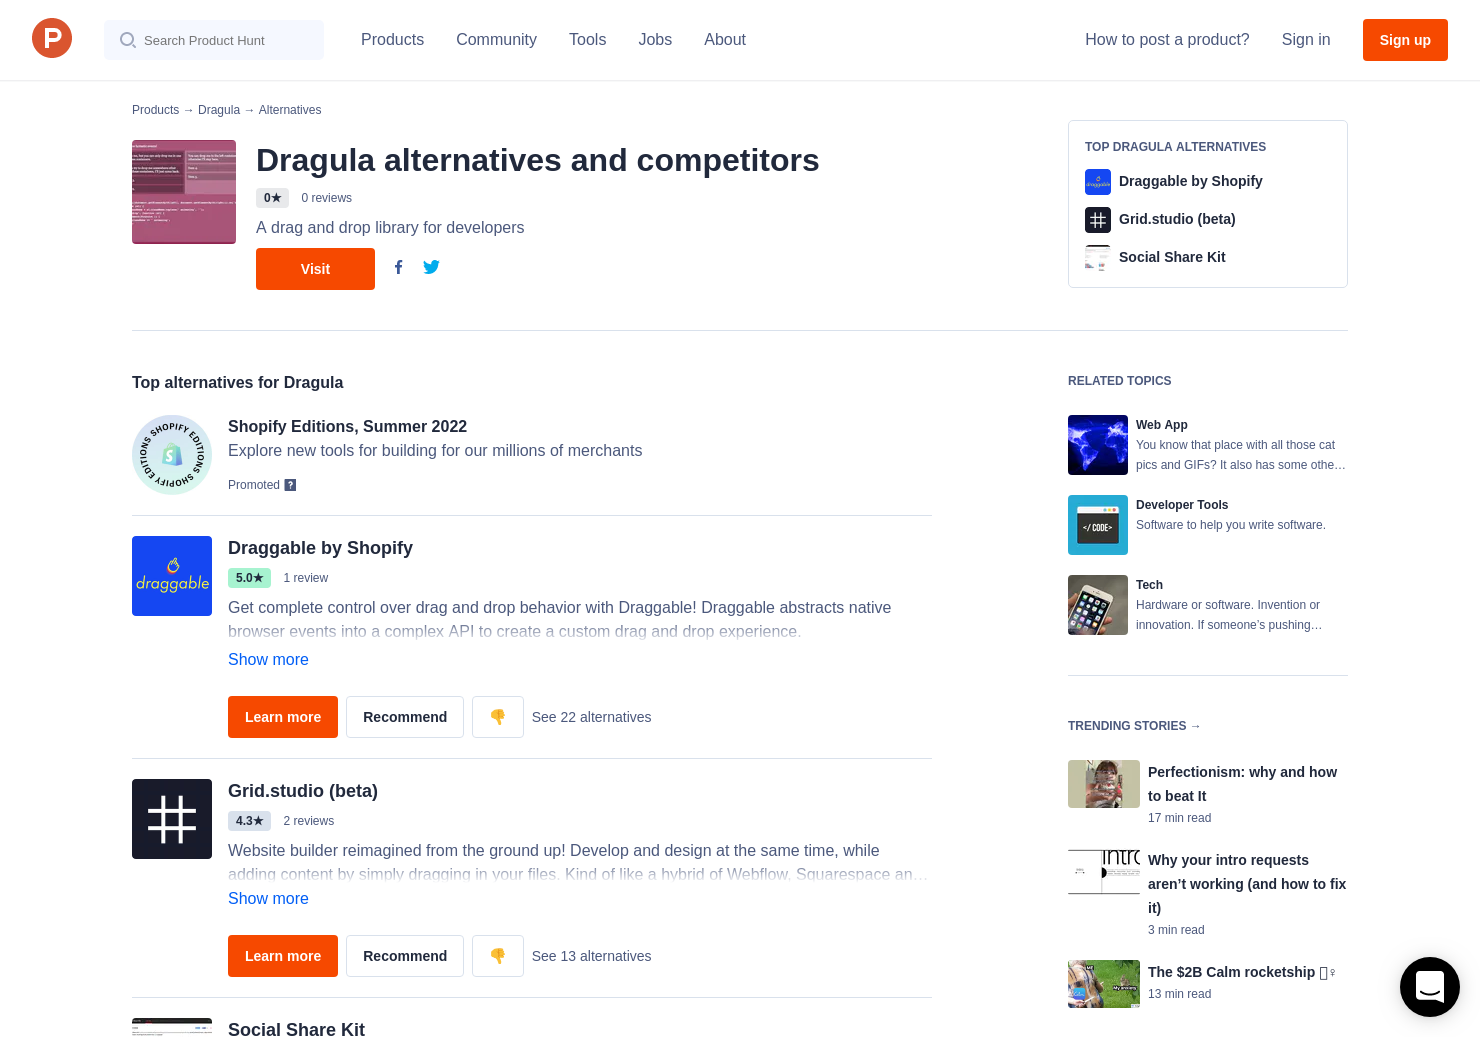 10 Alternatives to Dragula | Product Hunt